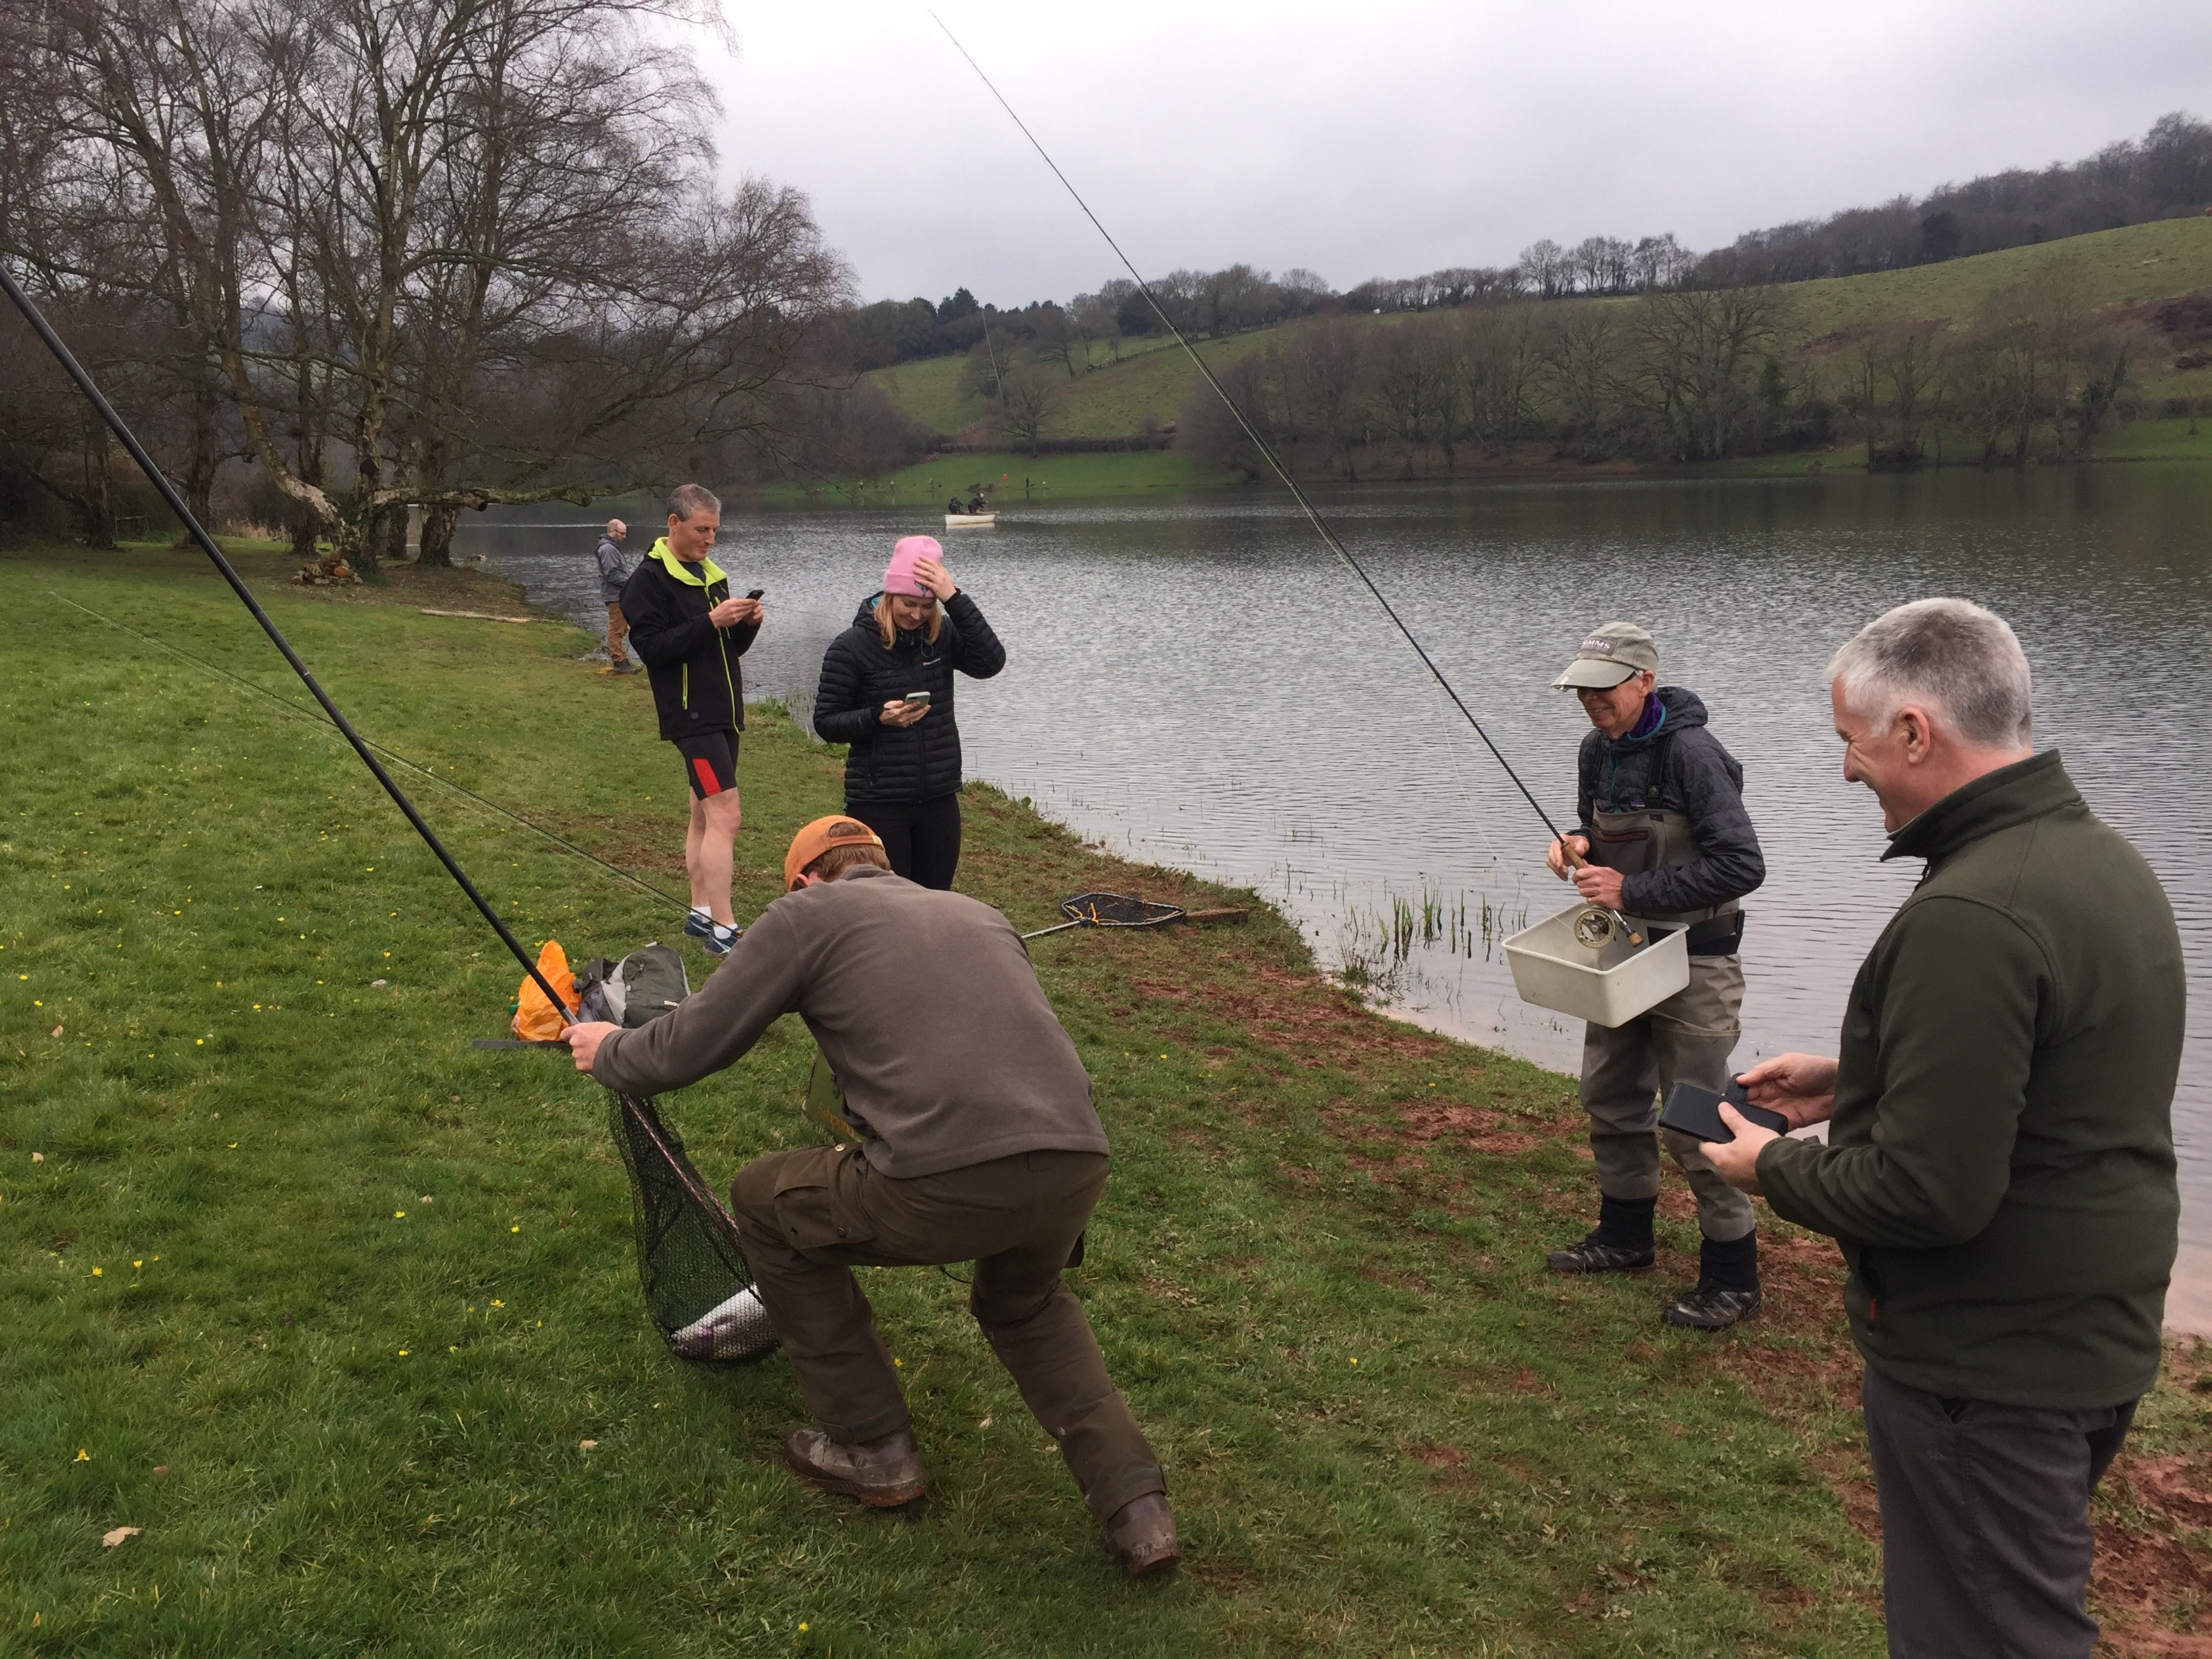 Marathon man Charles Jardine gets a trout on the bank - a key requirement of his epic mission.